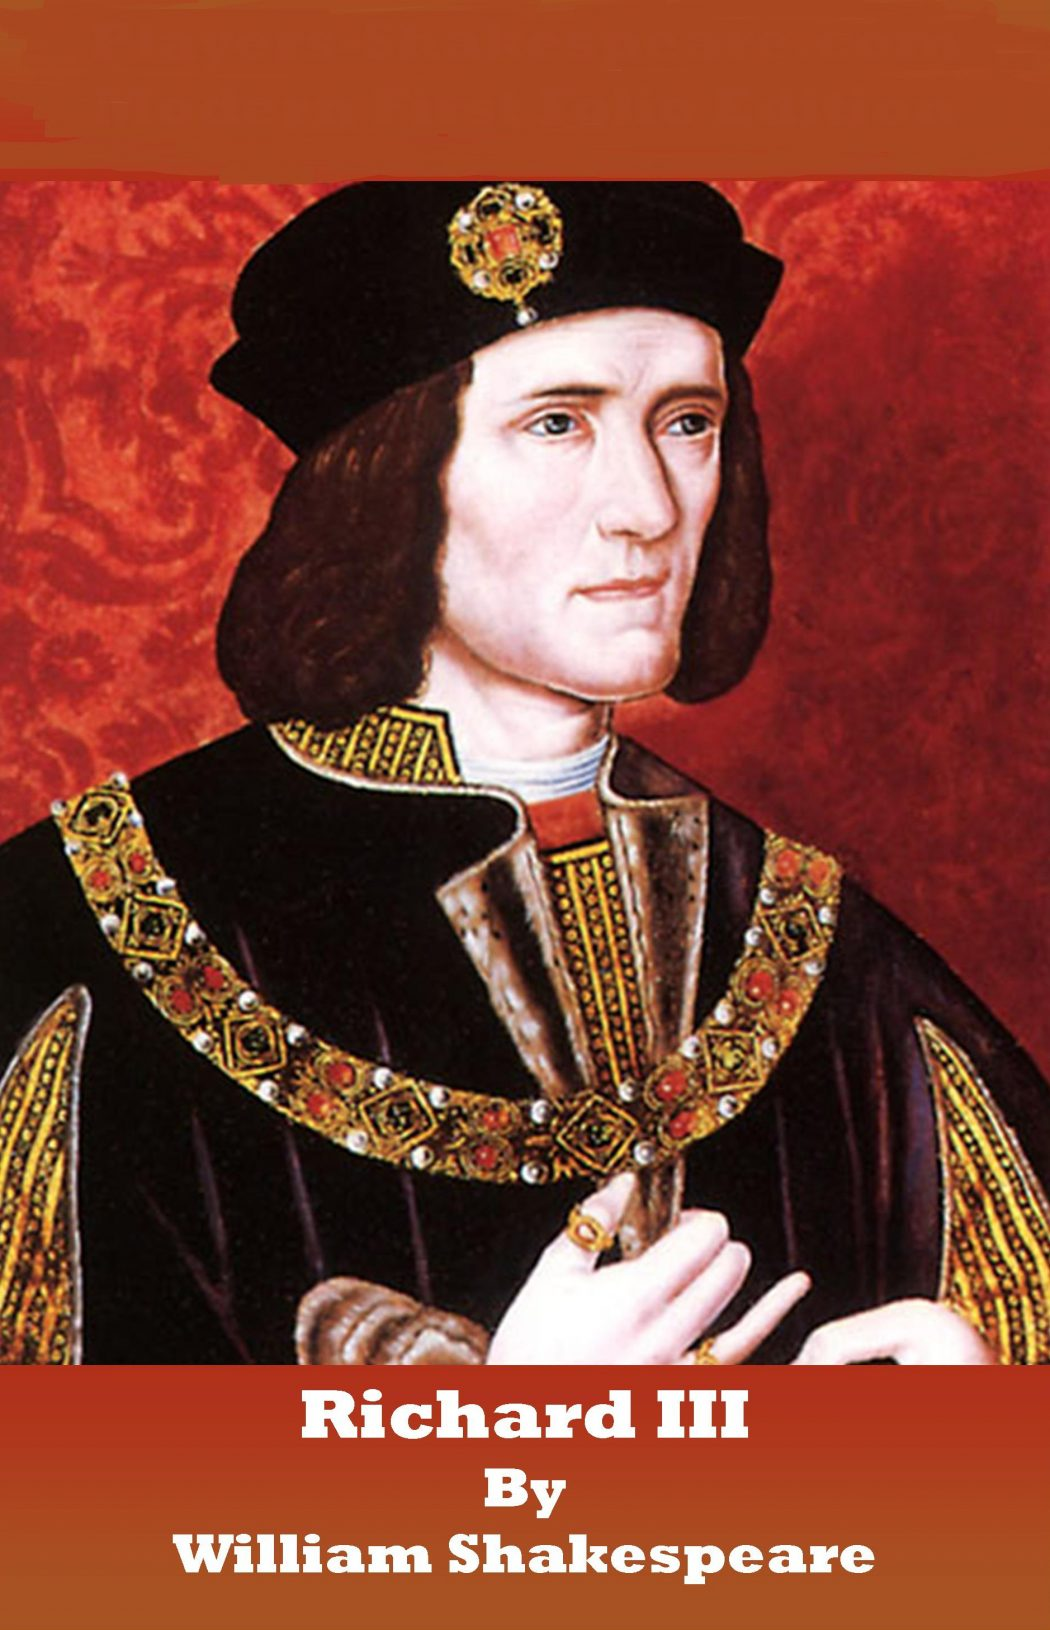 Richard-III-book Top 10 Best Shakespearean Plays